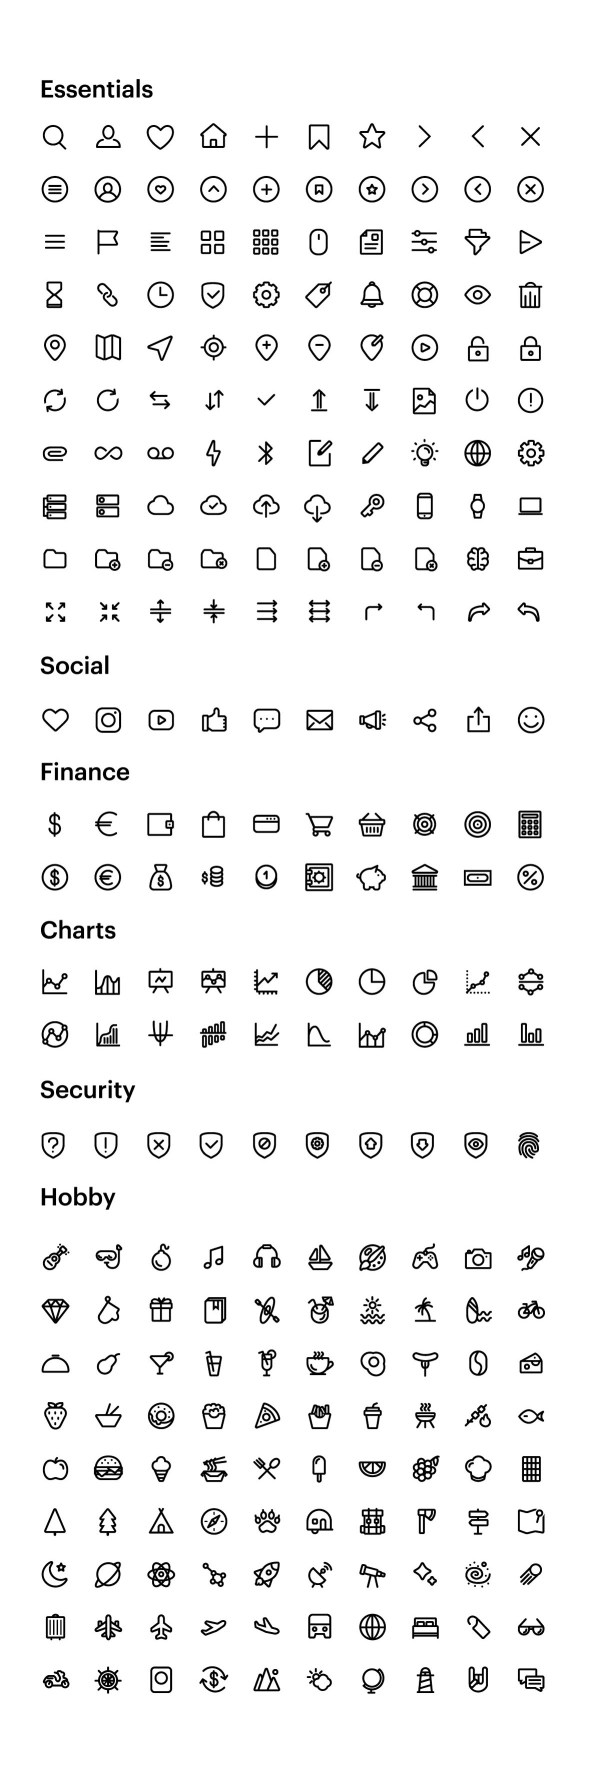 Free 250 Essential Icons